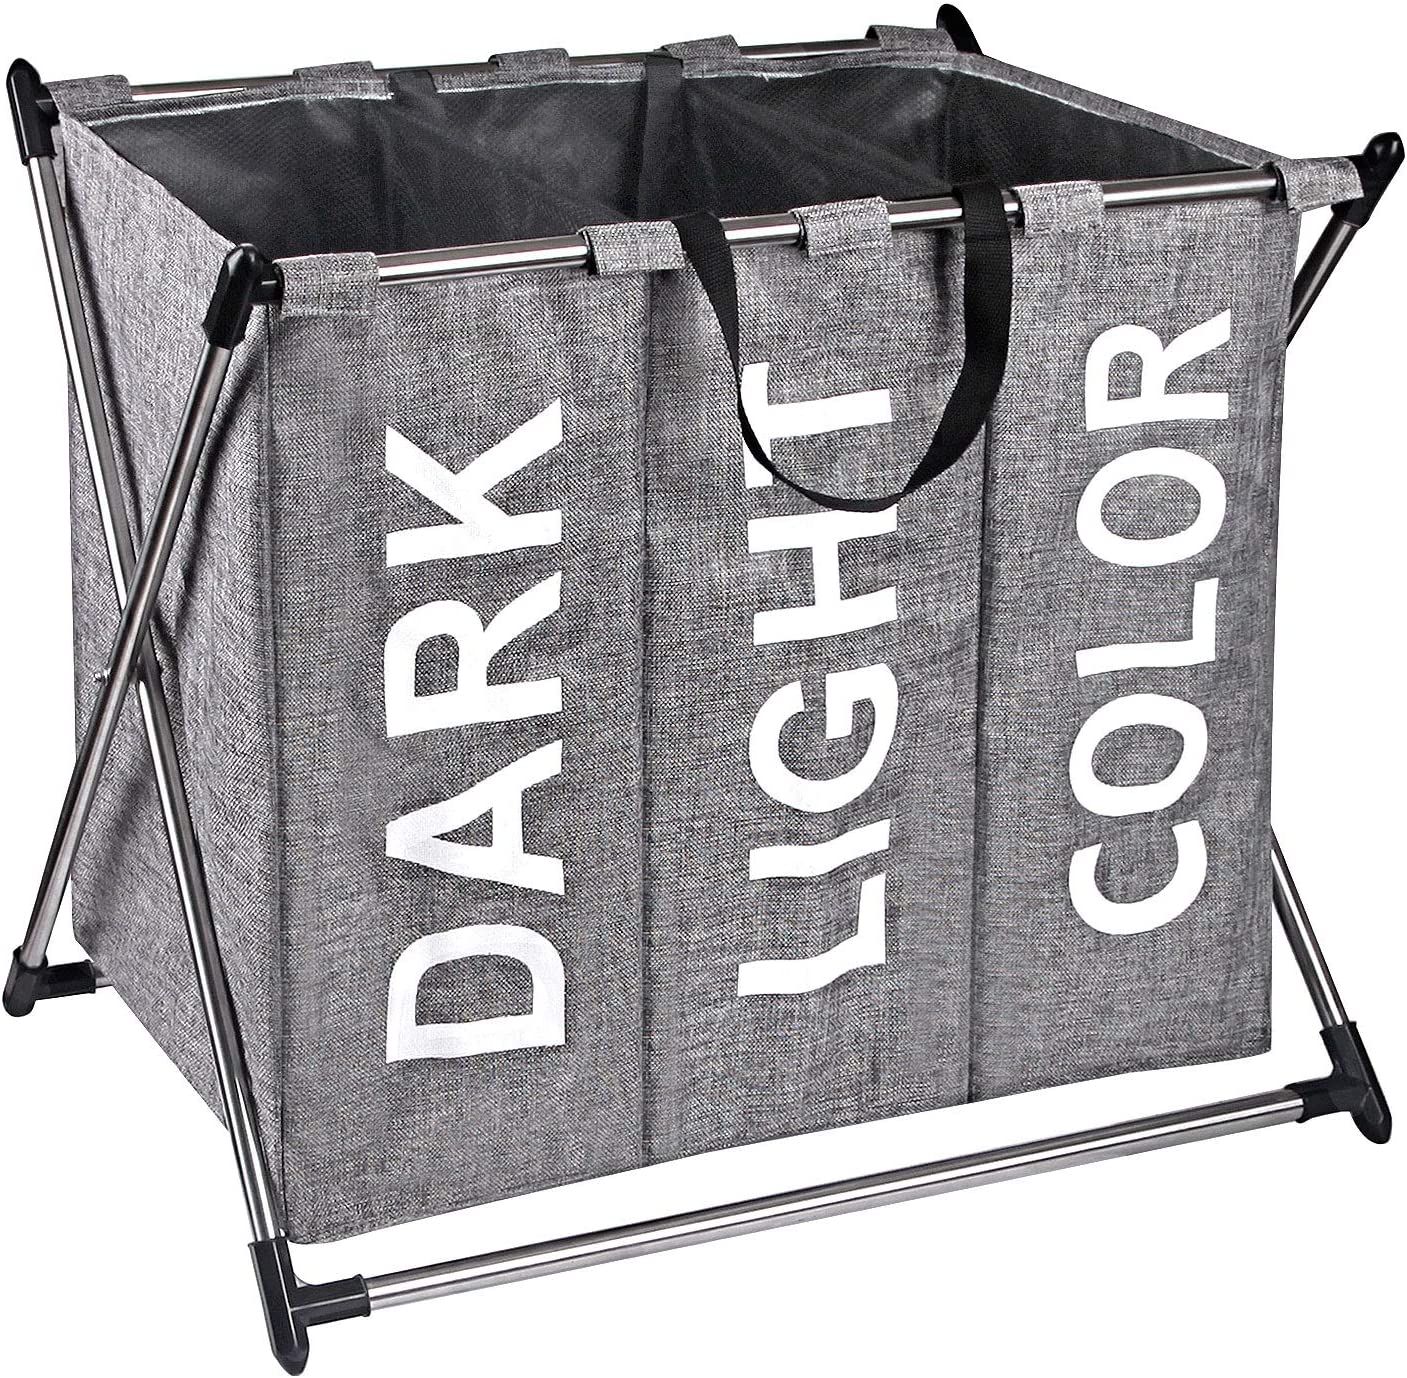 X-cosrack 40% OFF Cheap Max 57% OFF Sale Laundry Hamper Sorter - Steel Basket X-Frame Stainless